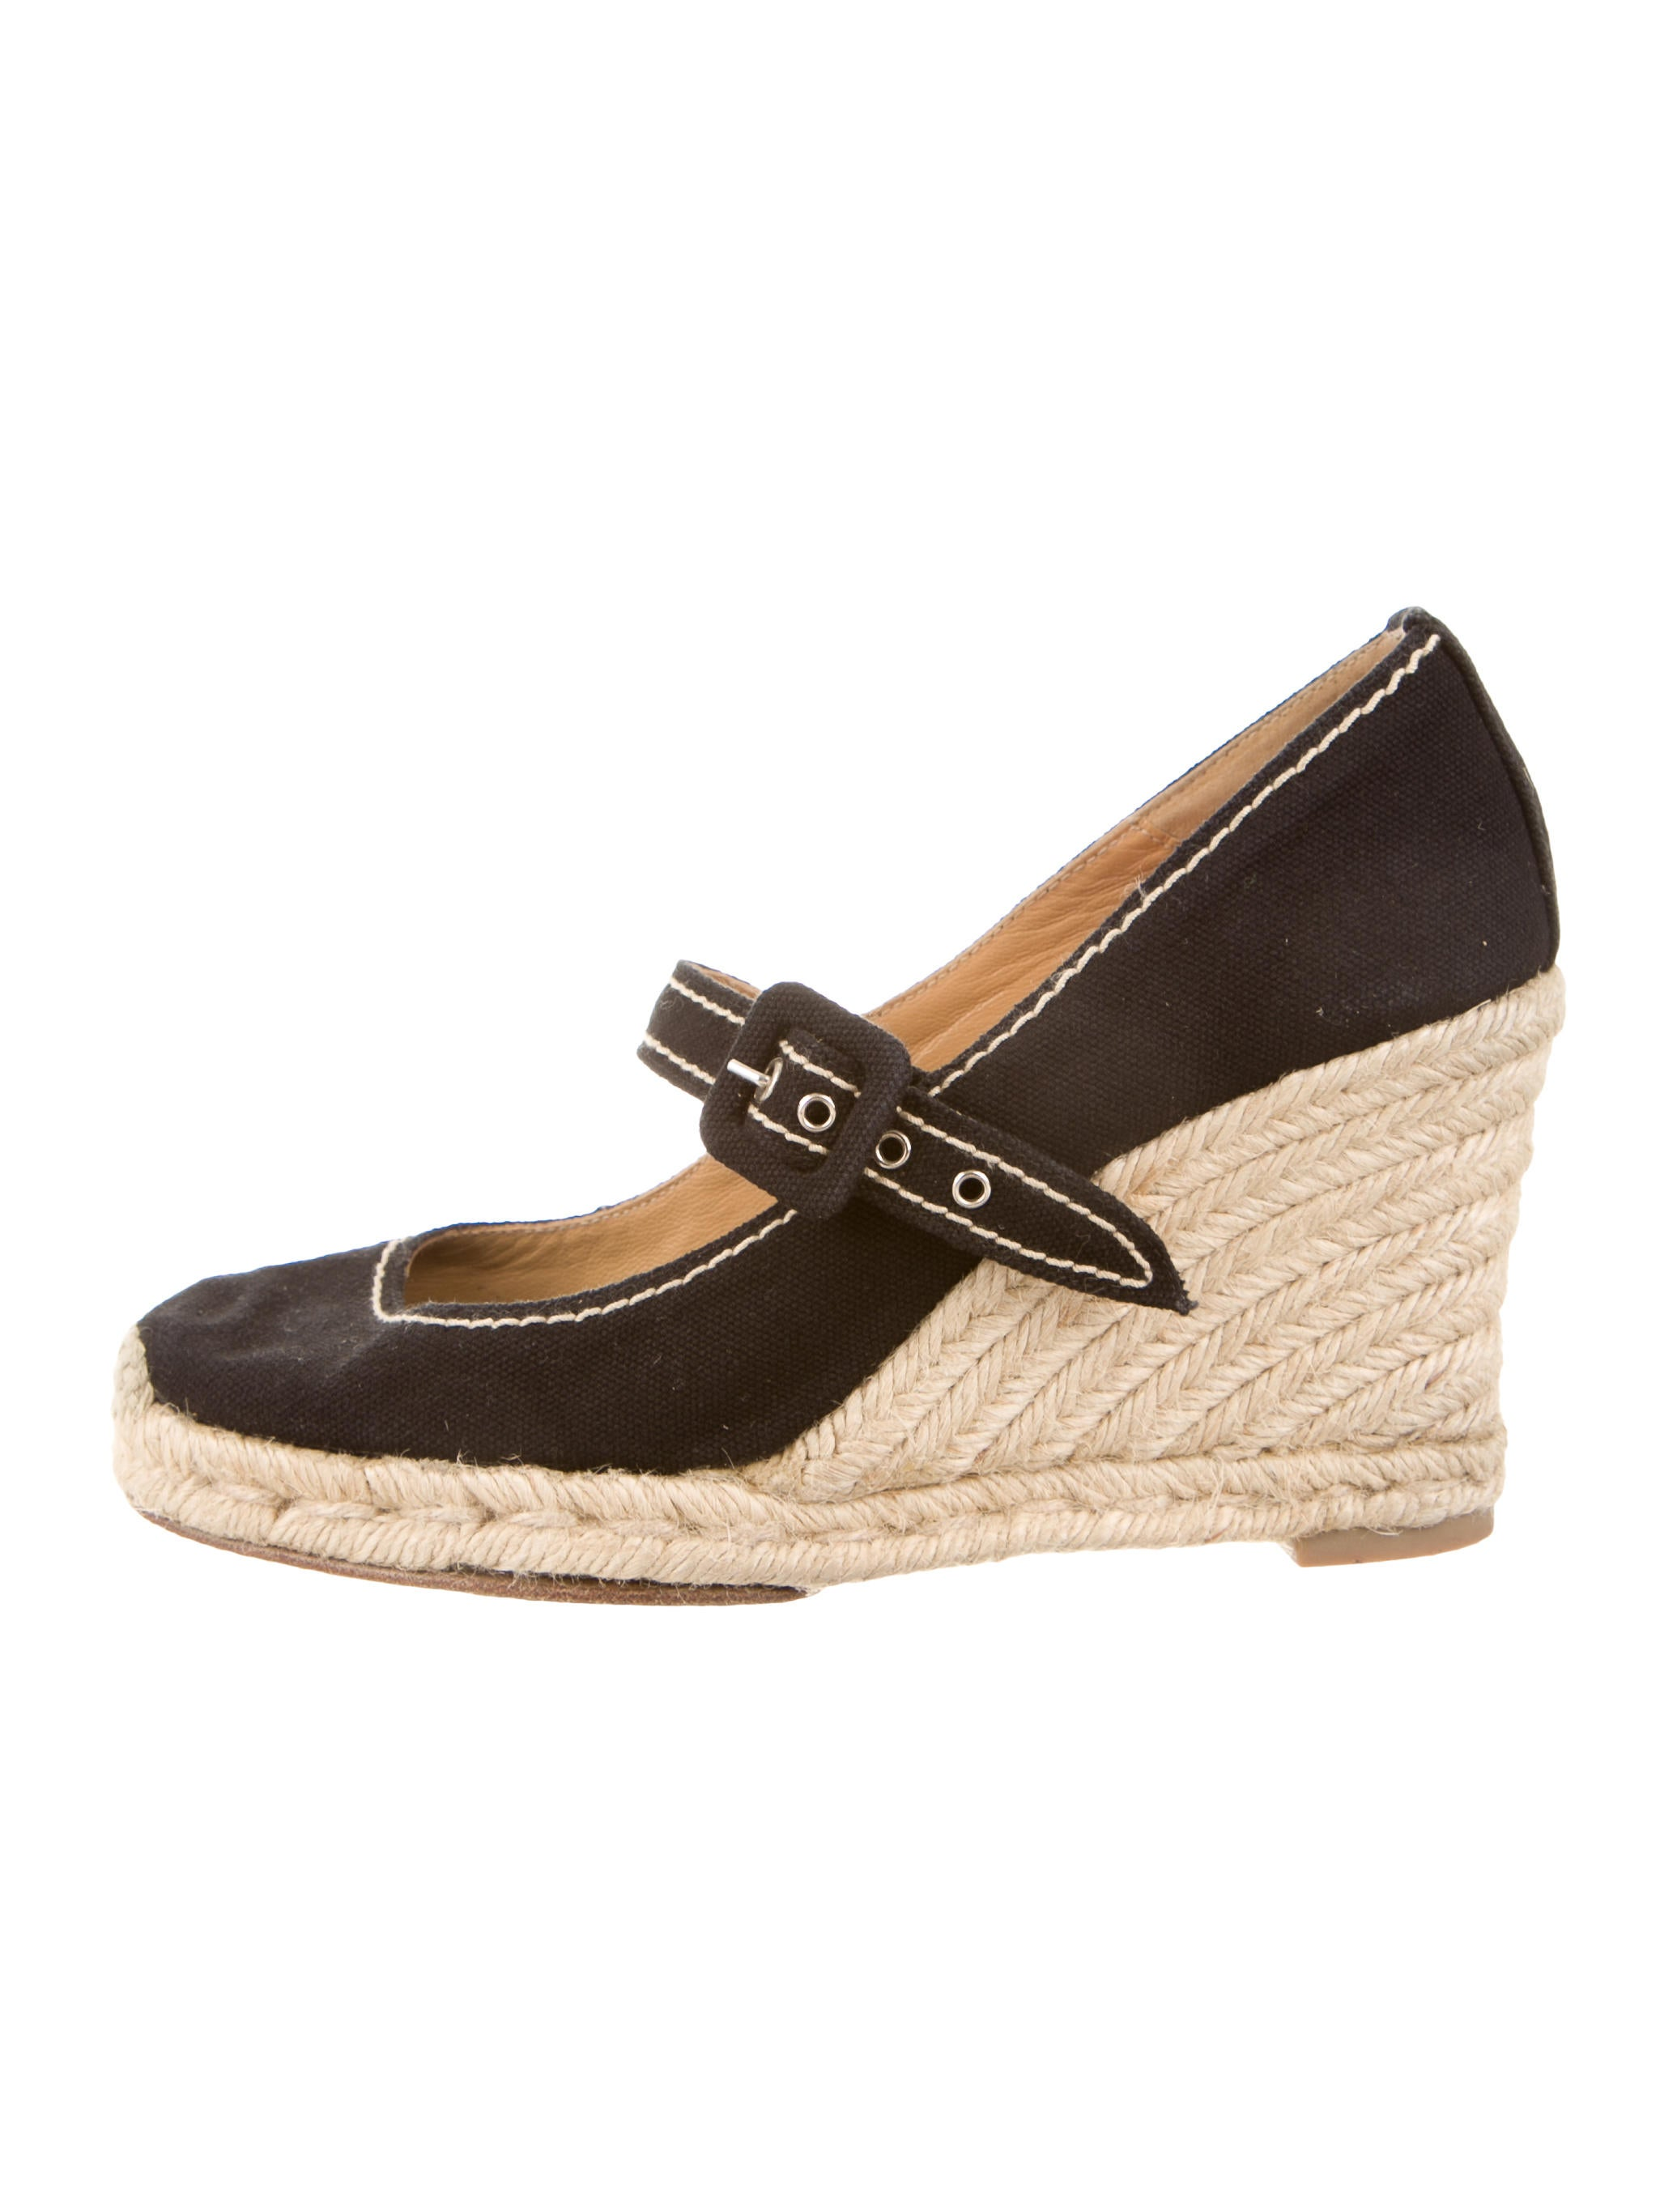 christian louboutin discount shoes - christian louboutin round-toe espadrille wedges, buy replica shoes